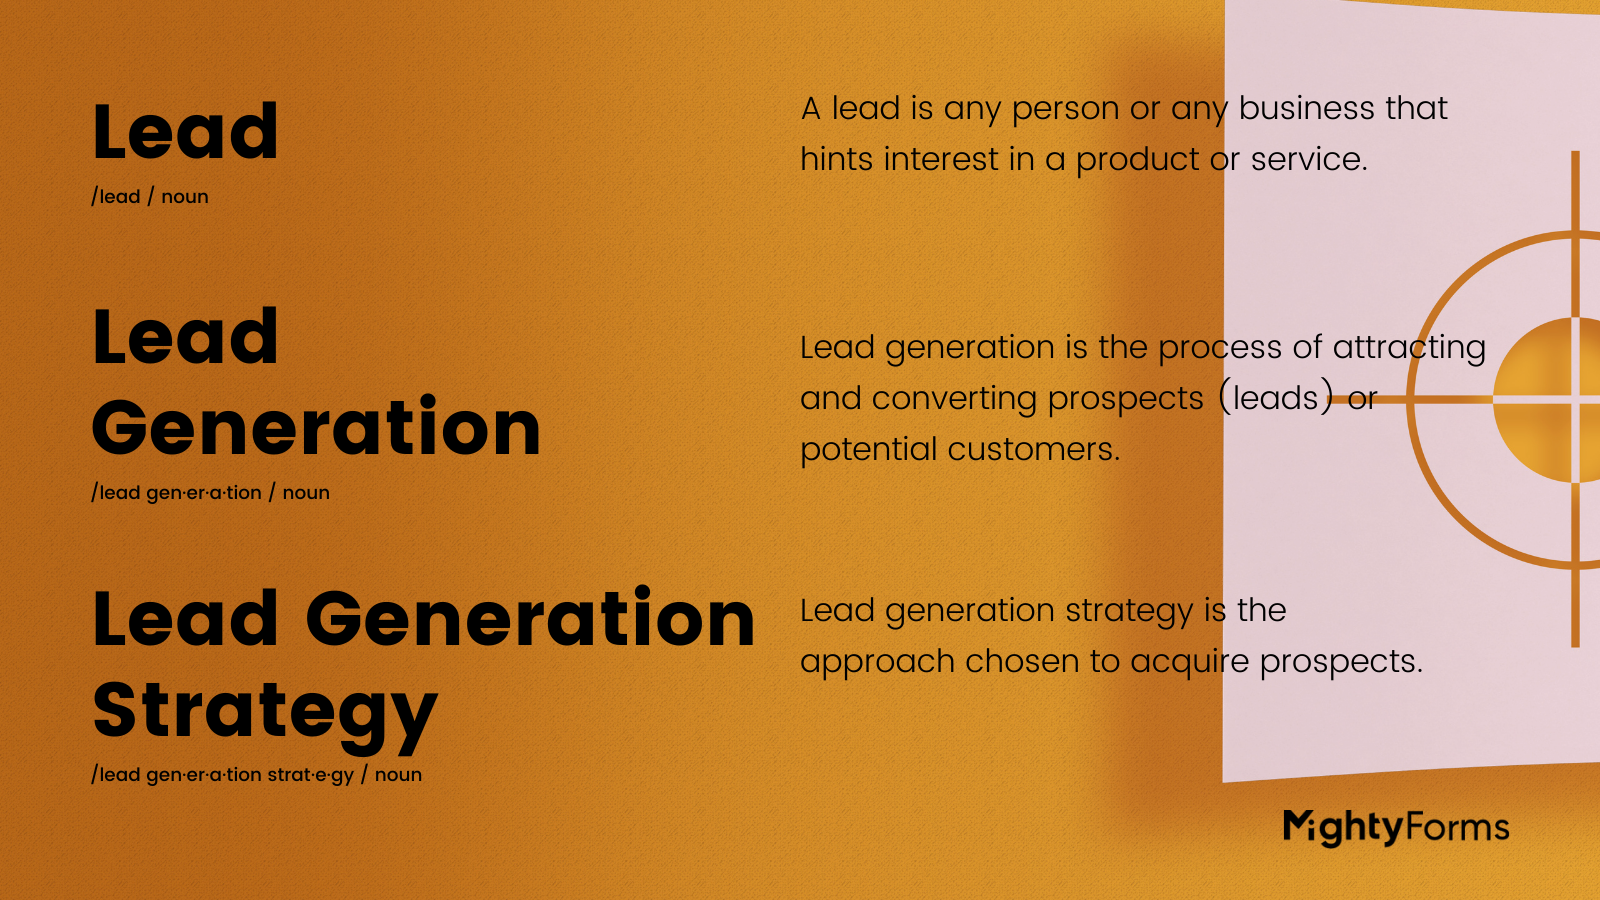 lead generation strategies definition infographic